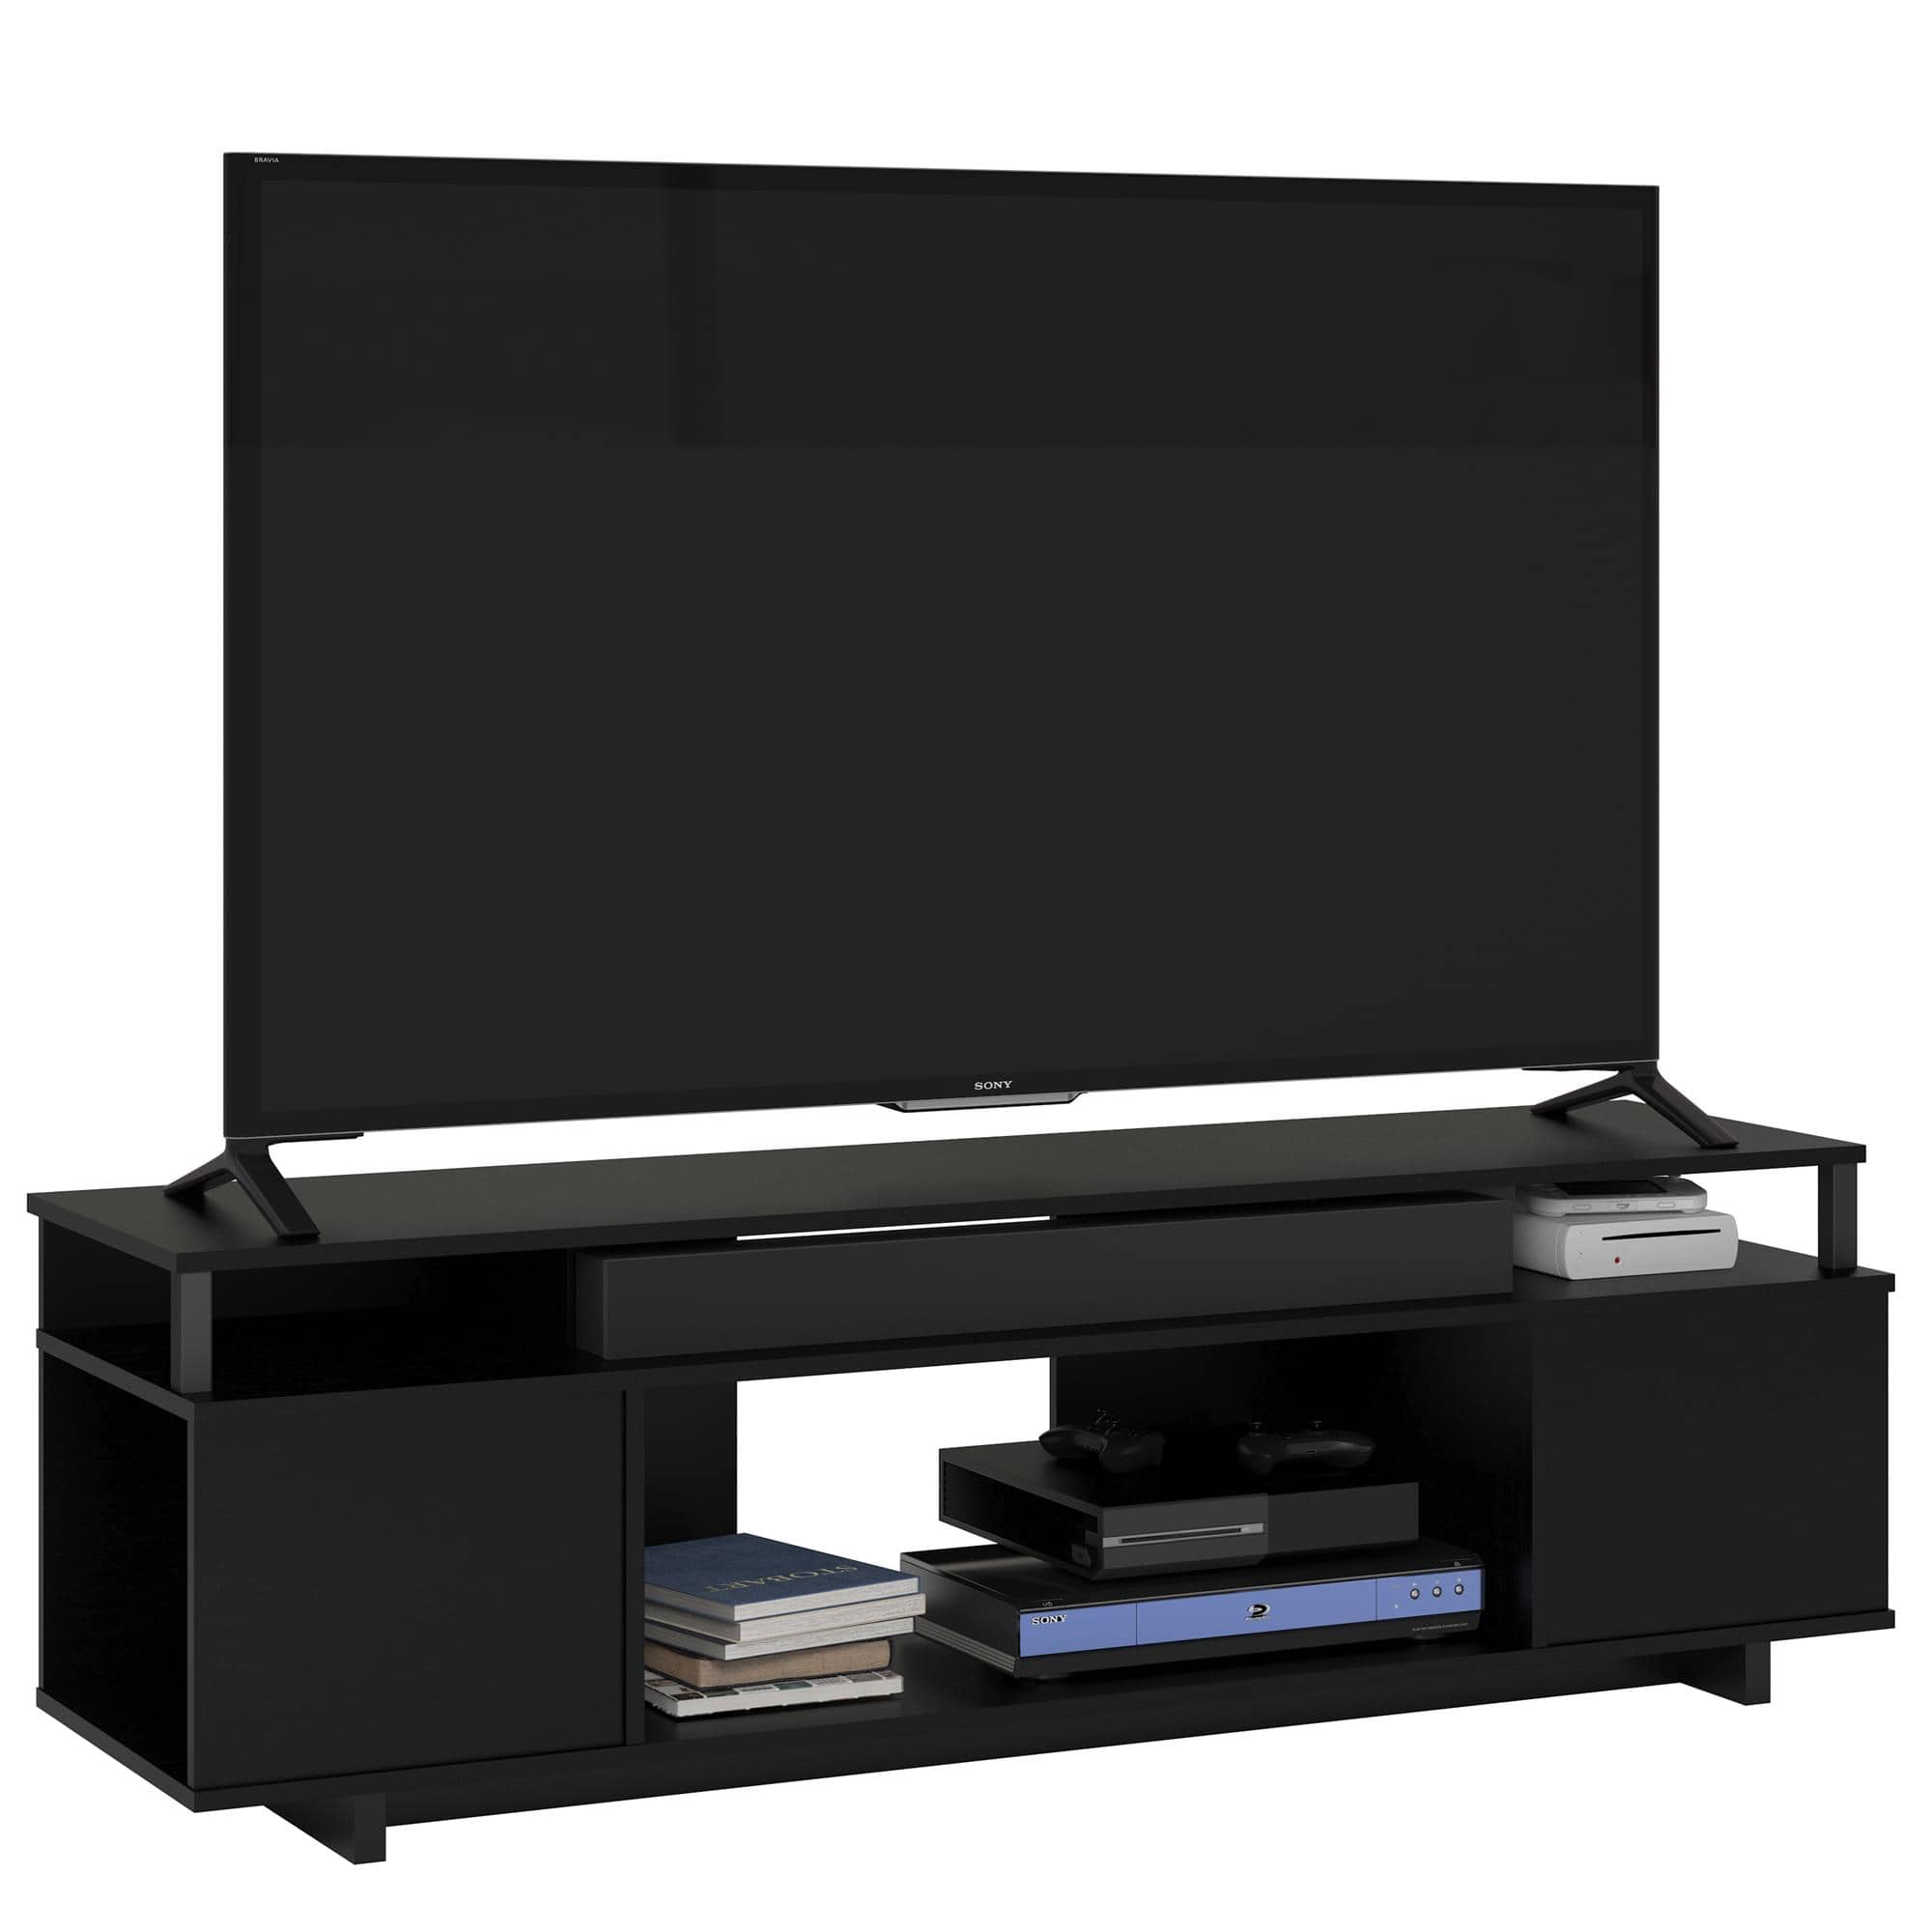 "Ameriwood Home Carson TV Stand for TVs up to 65"" $59"